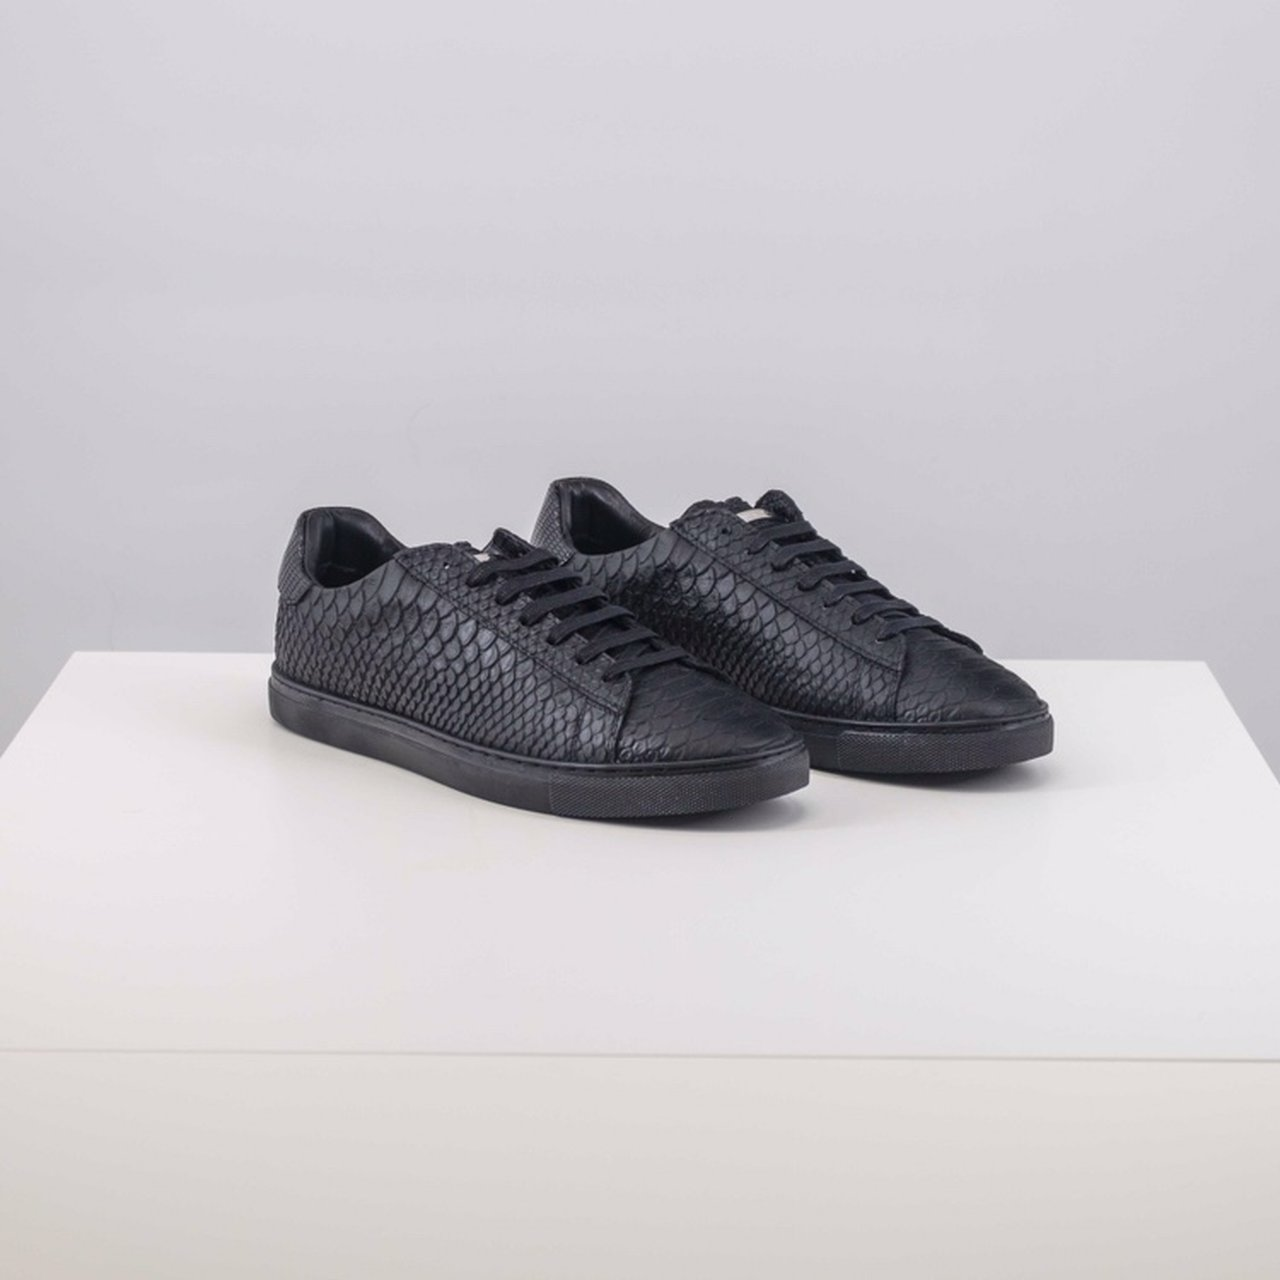 ca615ee1b2e0 Dsquared2 Sneakers Size 41 - 8 DM